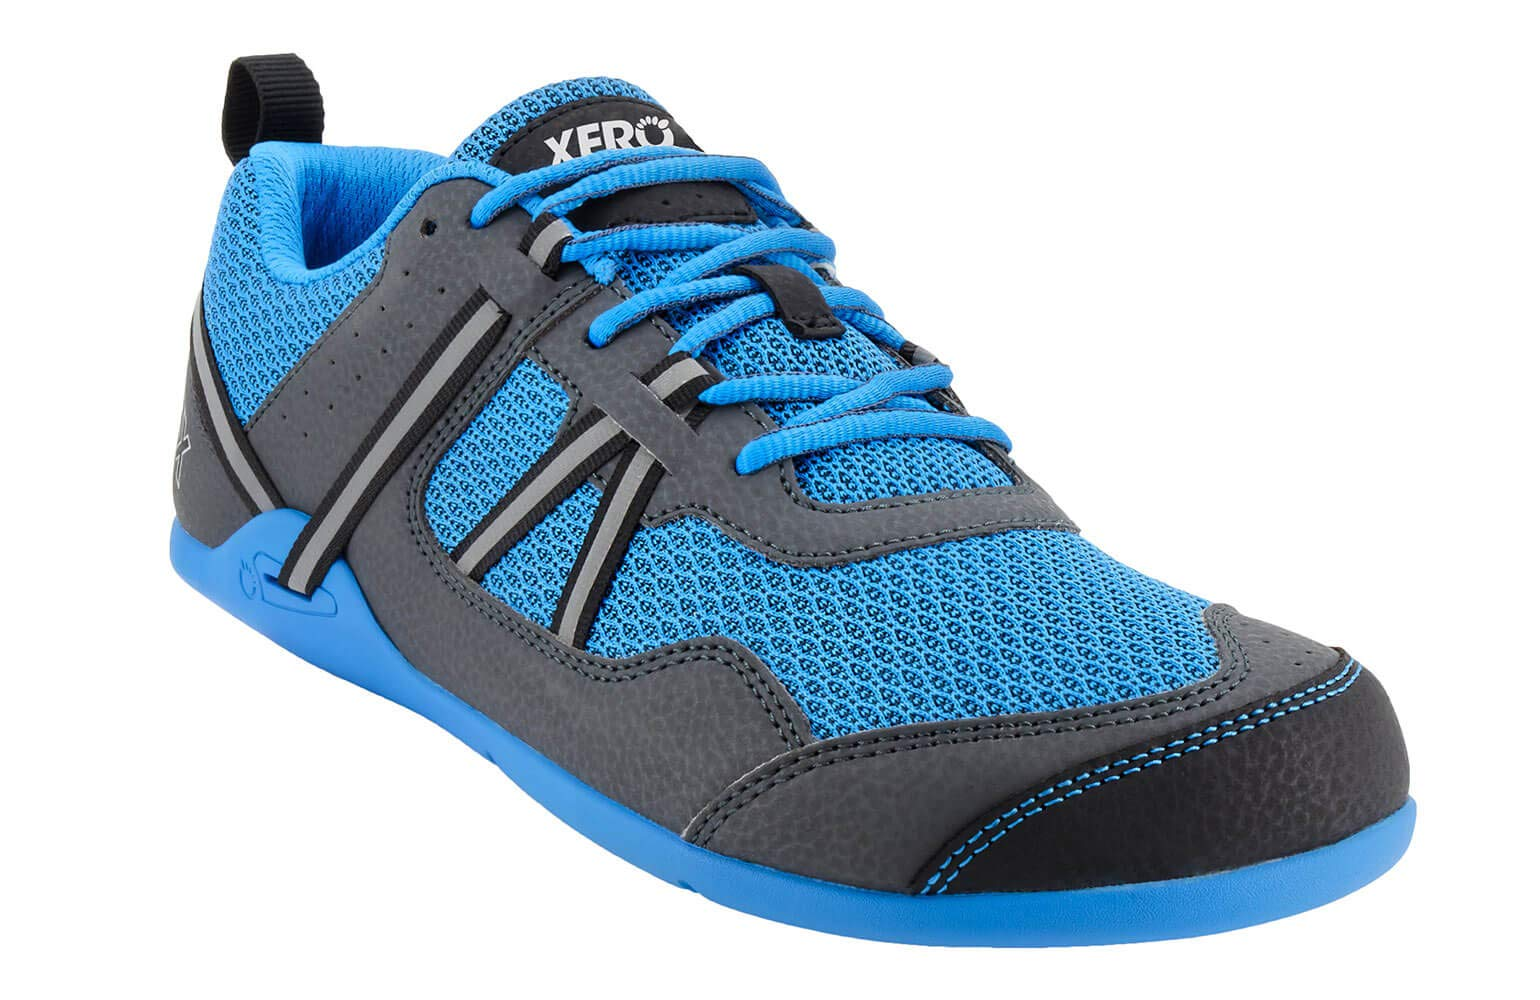 Xero Shoes Prio - Men's Minimalist Barefoot-Inspired Trail and Road Running Shoe - Fitness, Athletic Zero Drop Sneaker by Xero Shoes (Image #1)